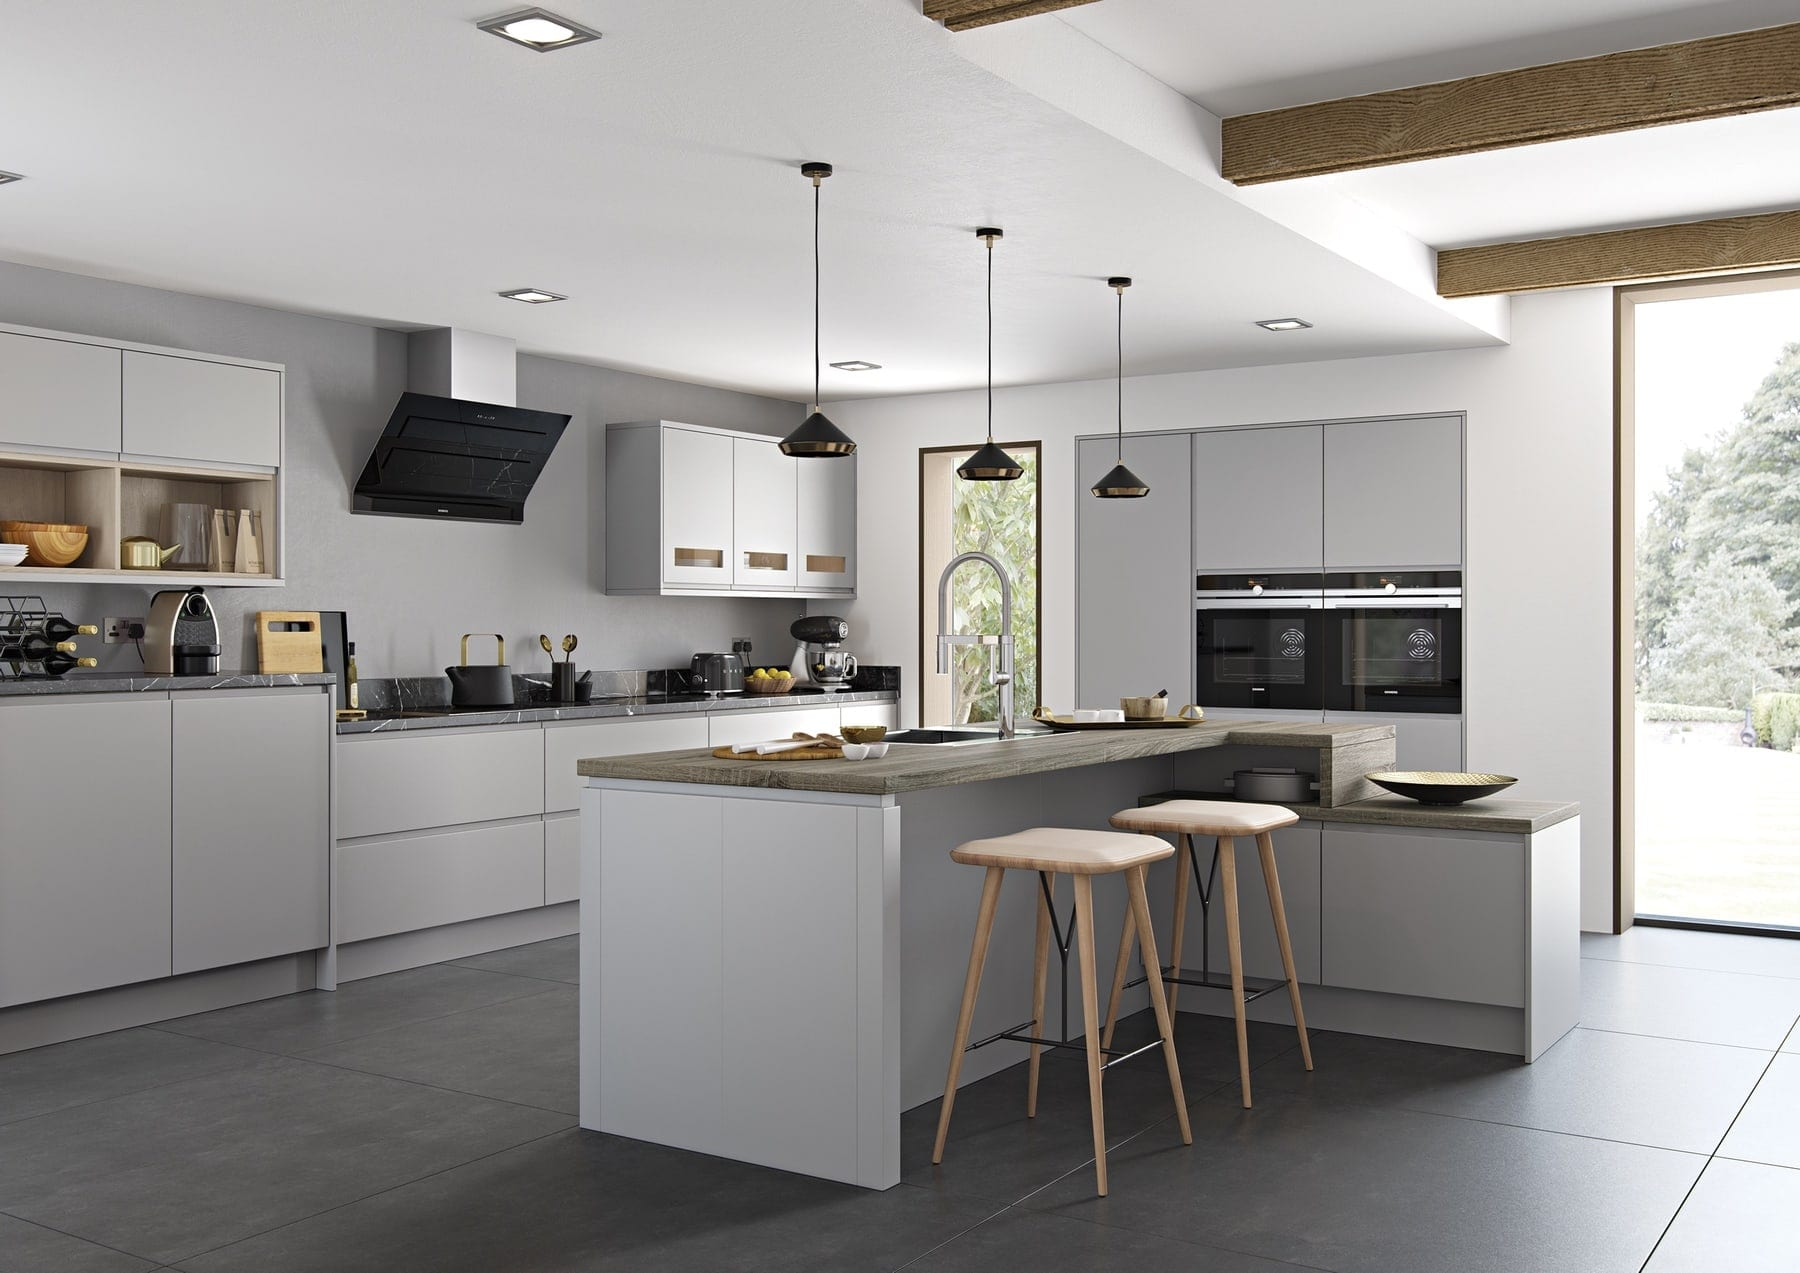 Strada Matte Light Grey L Shaped Kitchen With Island   Colour House Interiors, Caterham